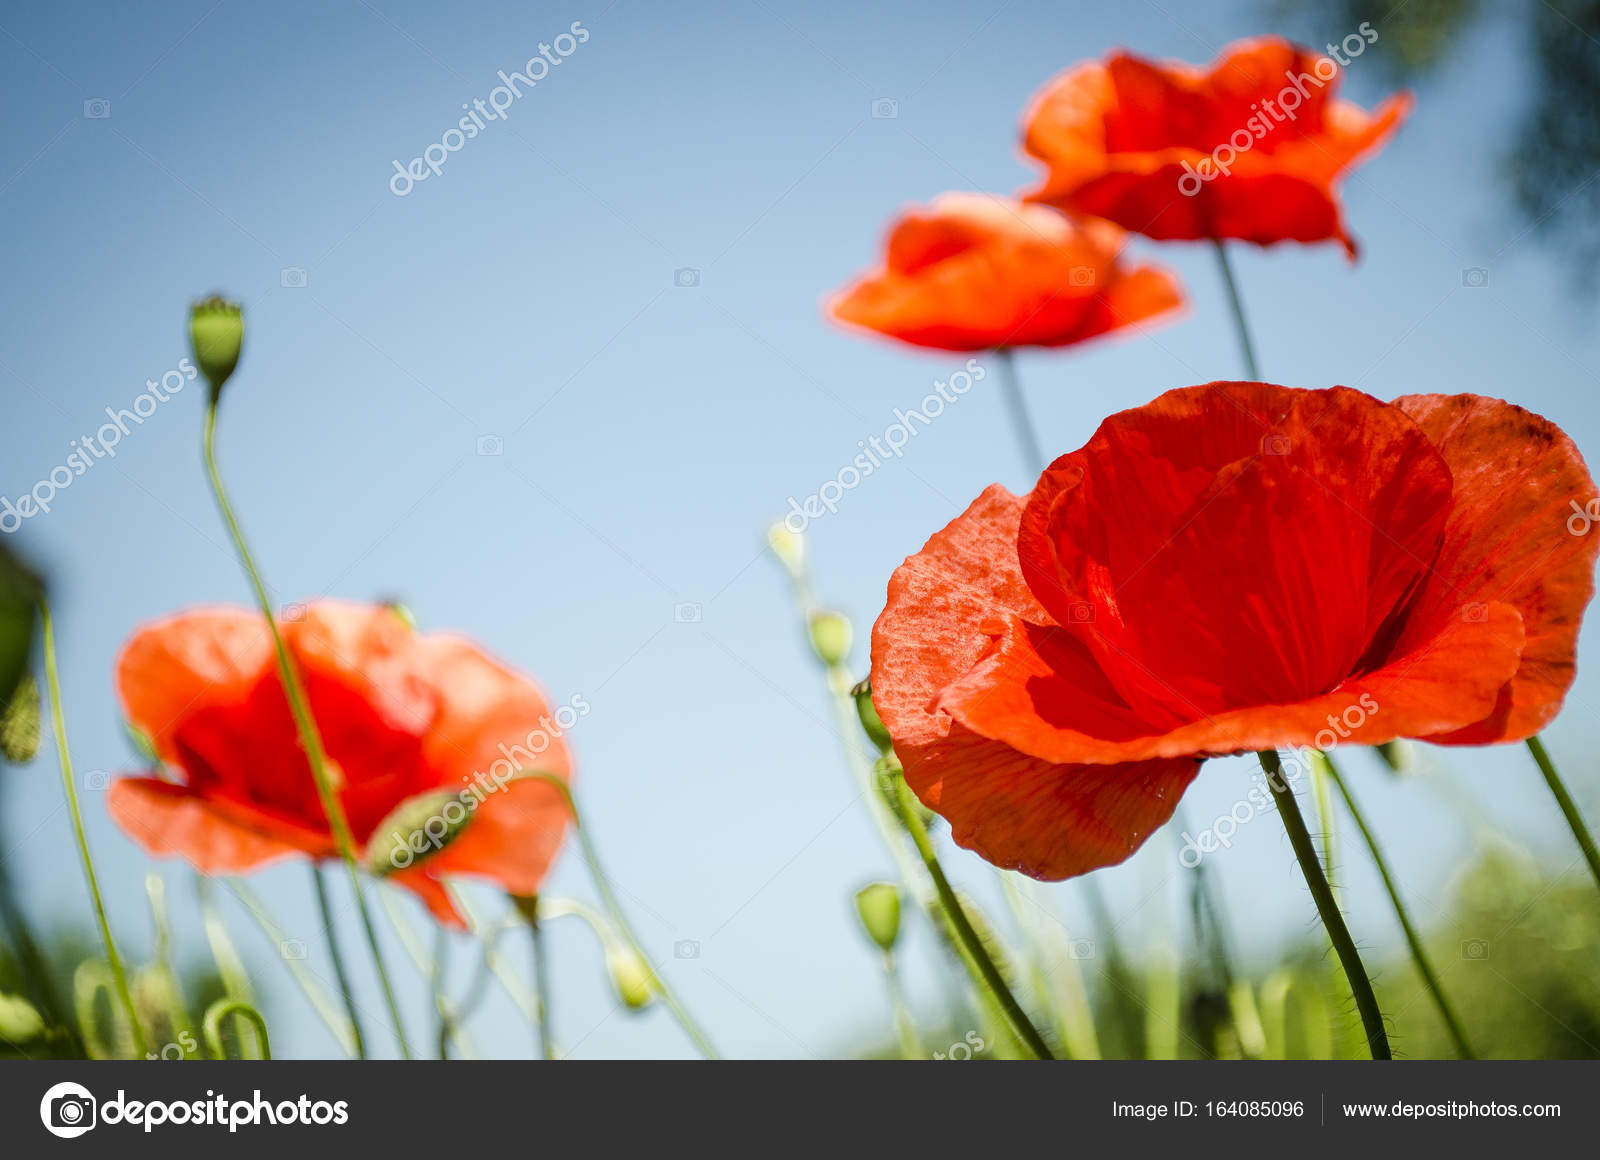 Red Poppies In The Flowering Season Stock Photo Katerina3 164085096